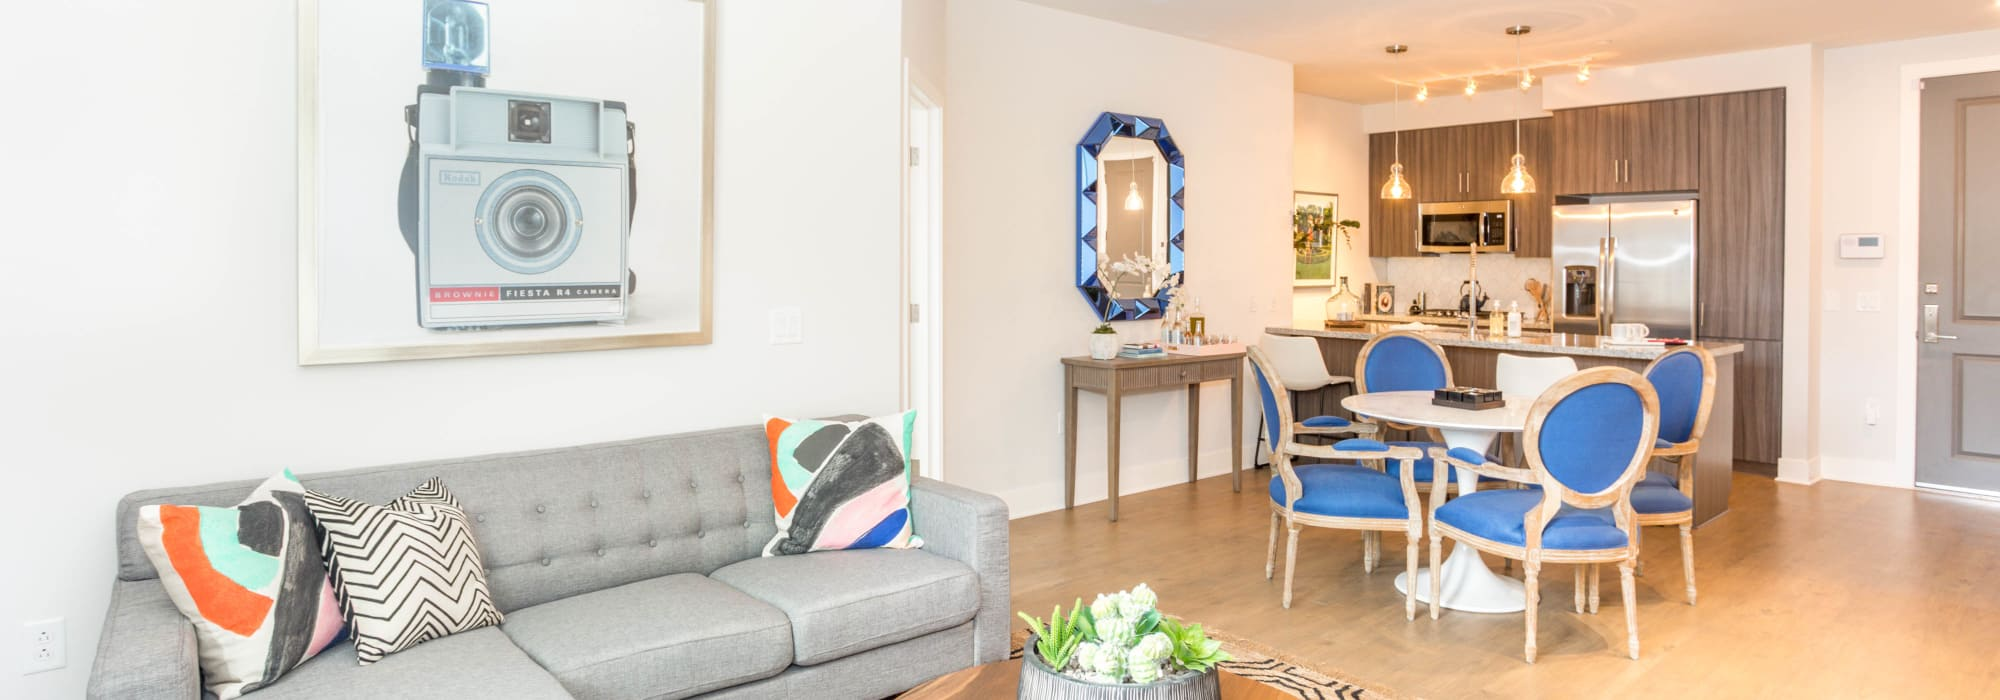 Luxury living room at Lakeside Drive Apartments in Tempe, Arizona